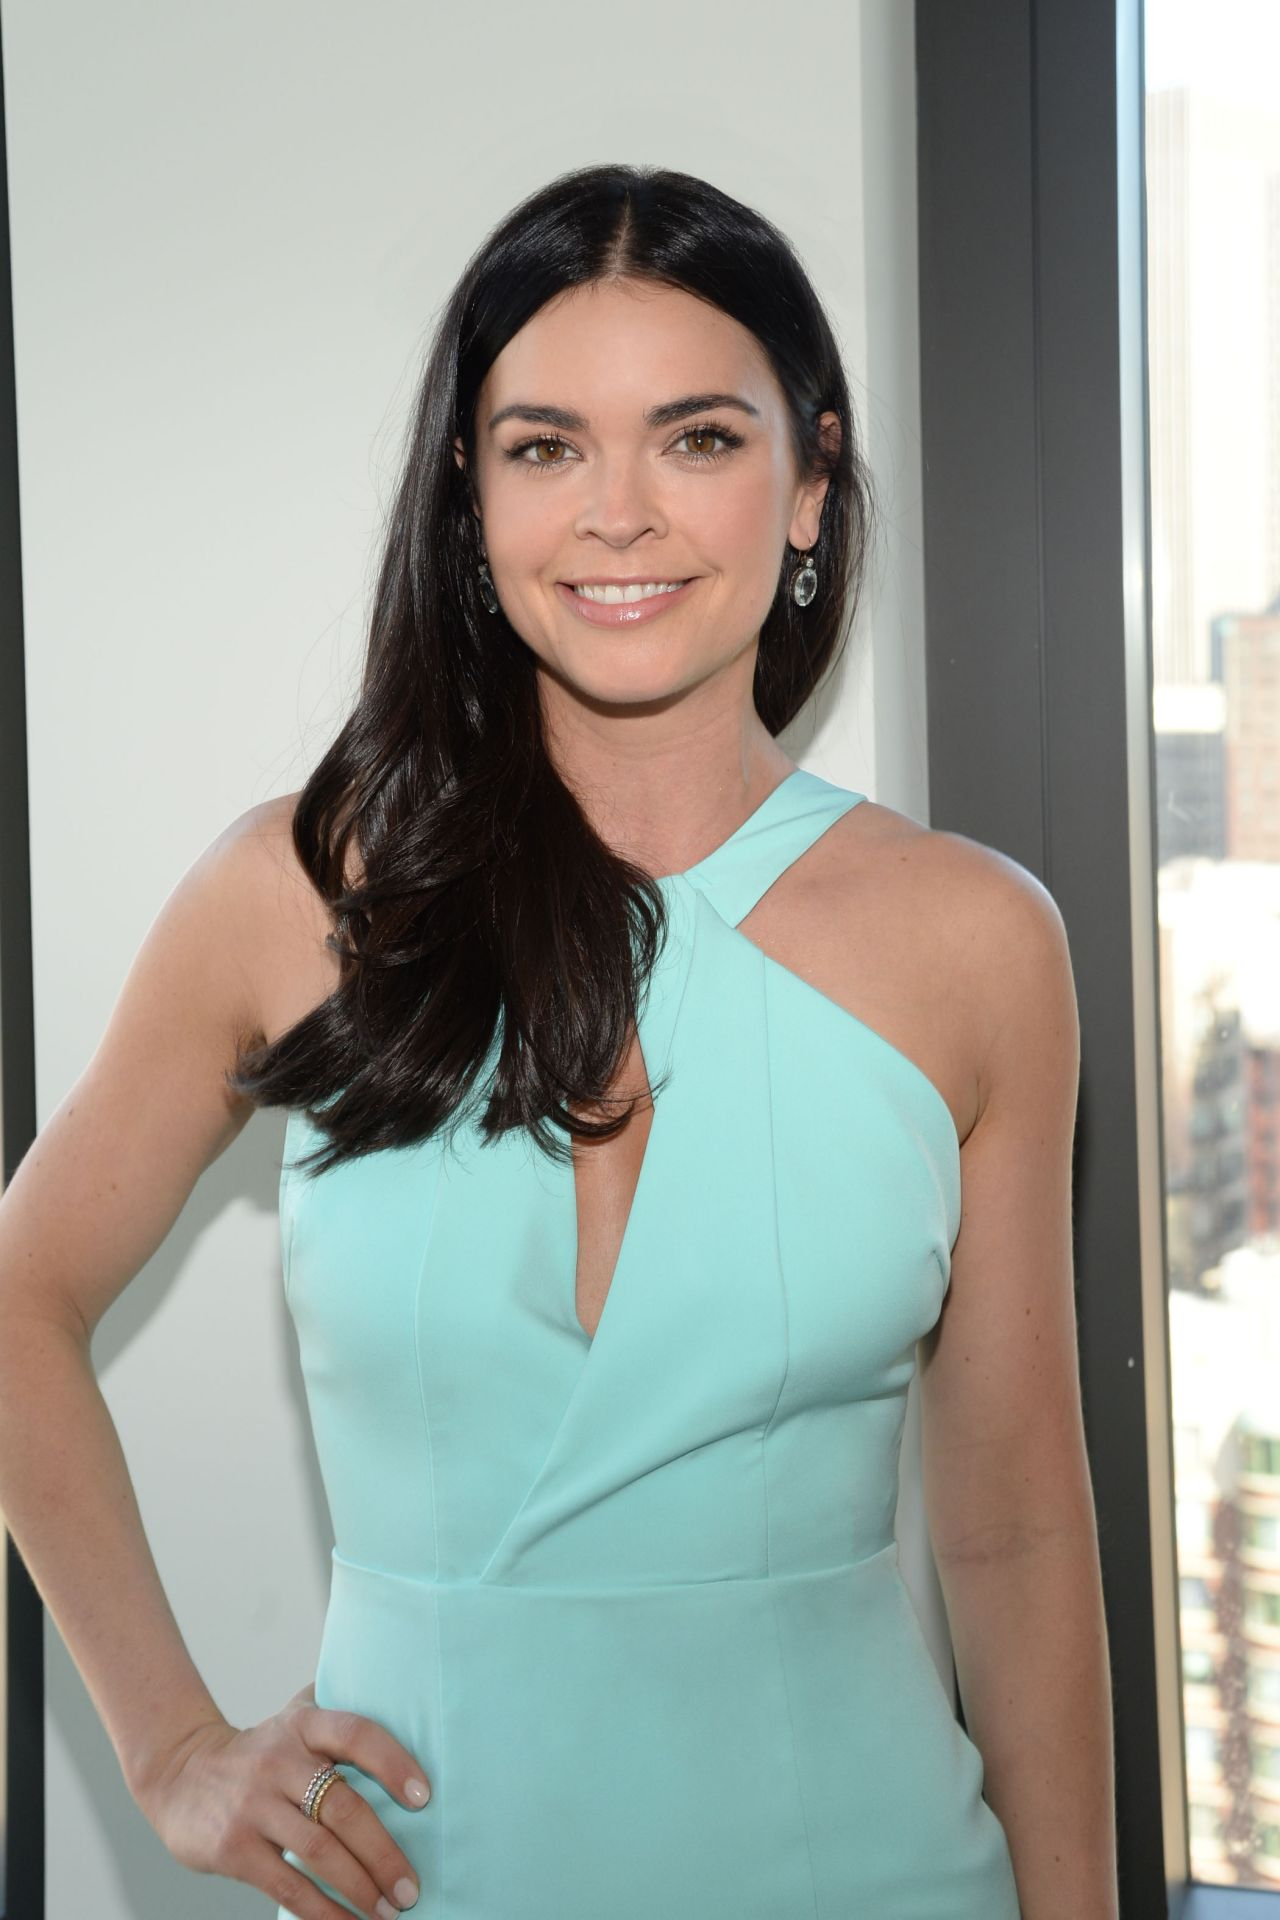 katie lee getting ready for a shoot in new york 4262016